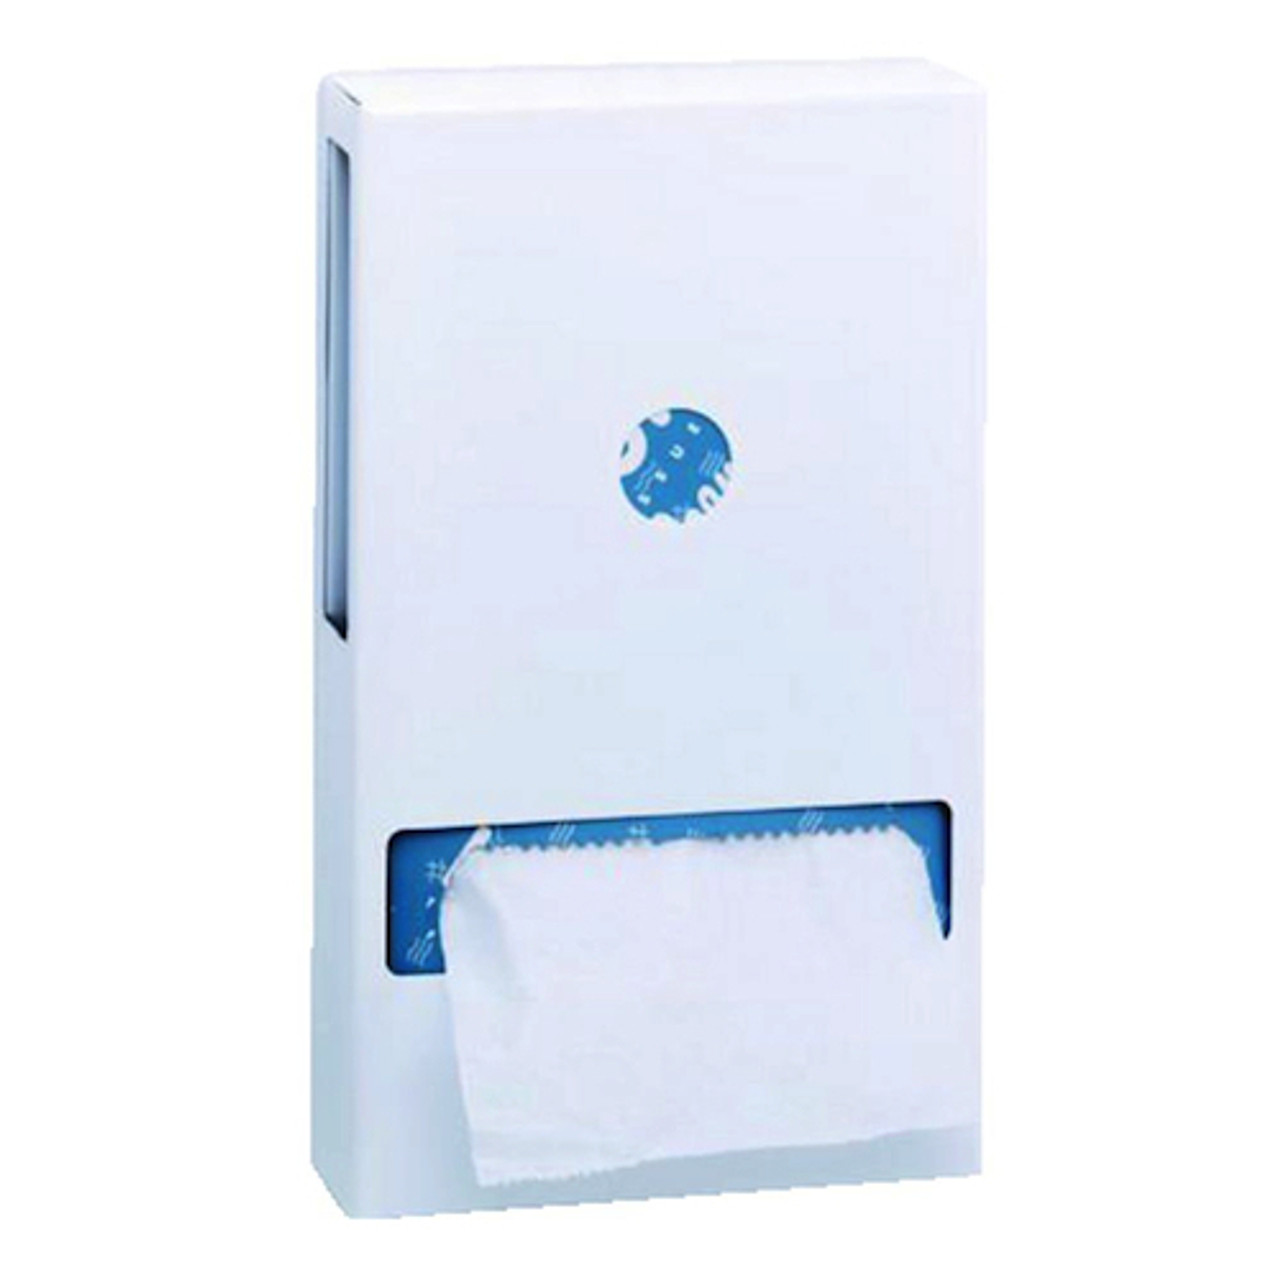 Kimberly Clark Interfold Toilet Tissue Dispenser (4930) Kimberly Clark Professional